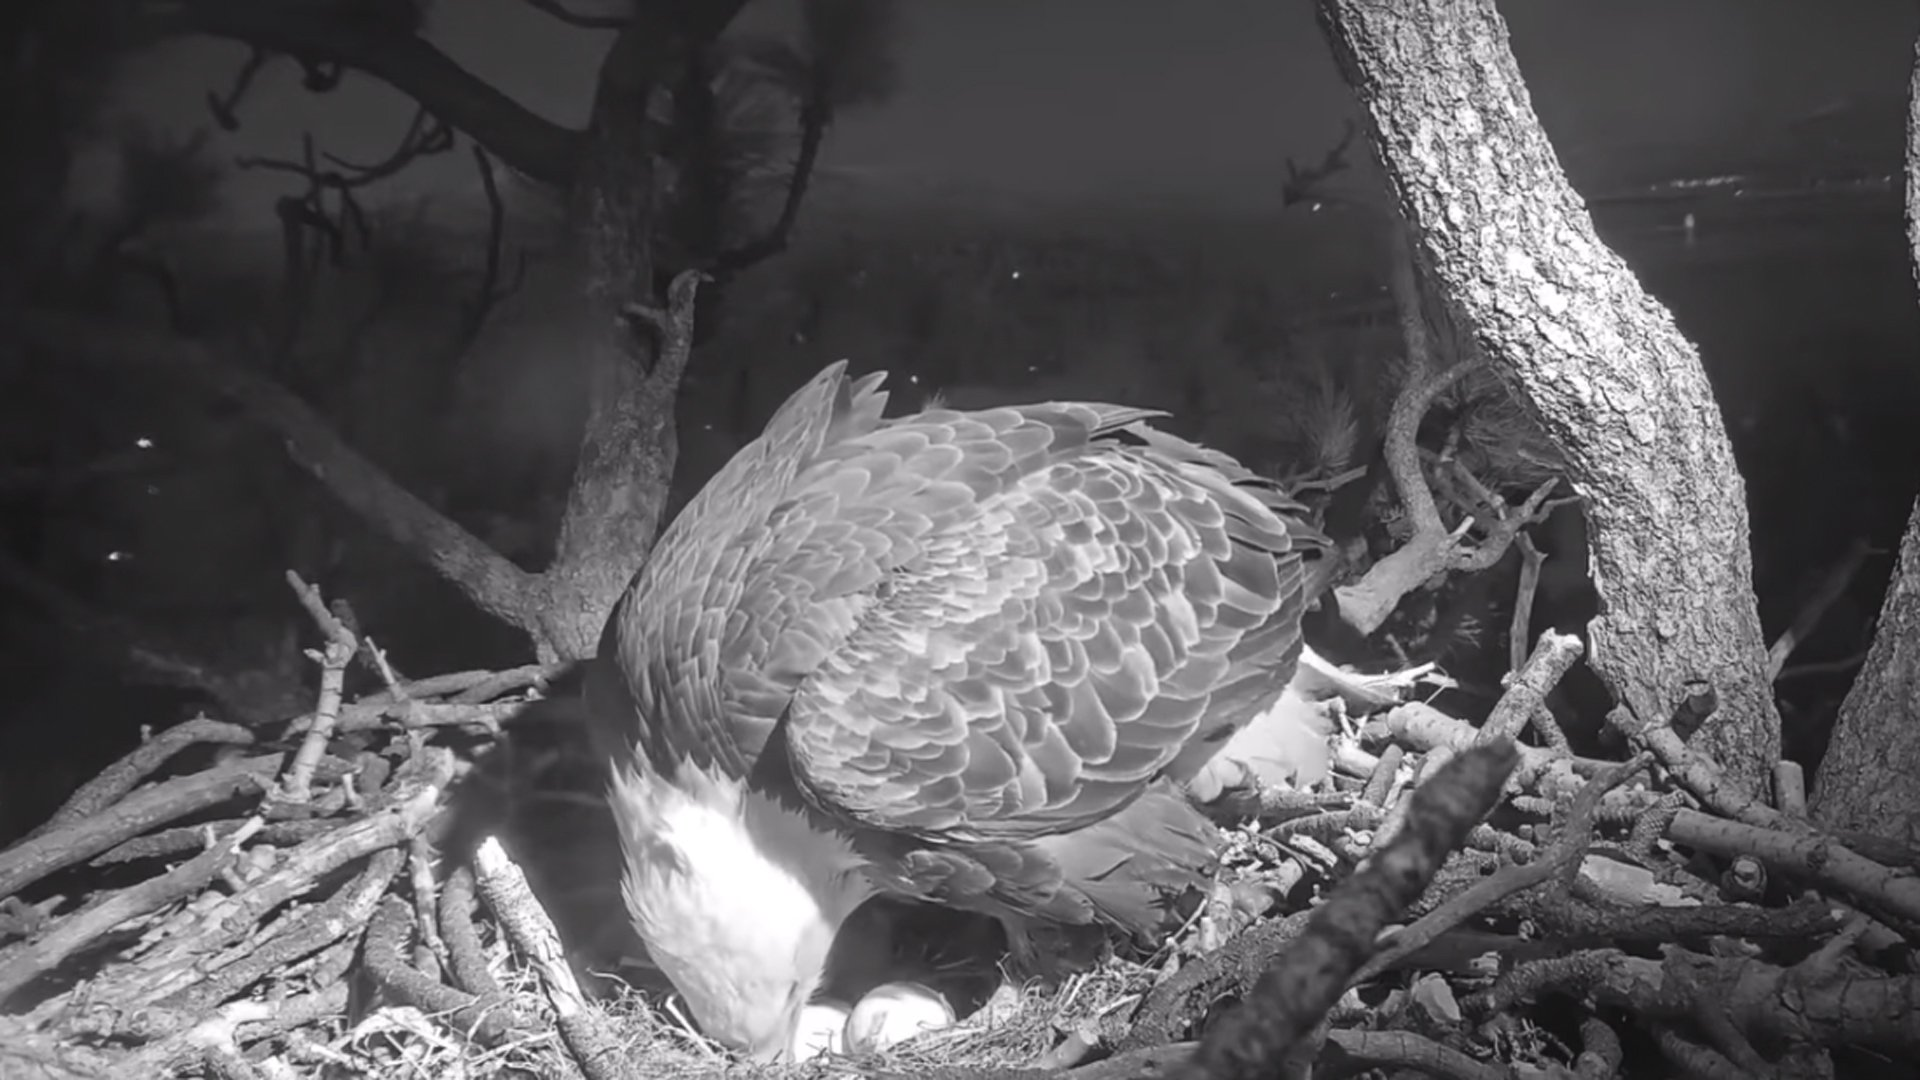 Jackie with her two eggs on Jan. 11, 2020. (Credit: Friends of Big Bear Valley)